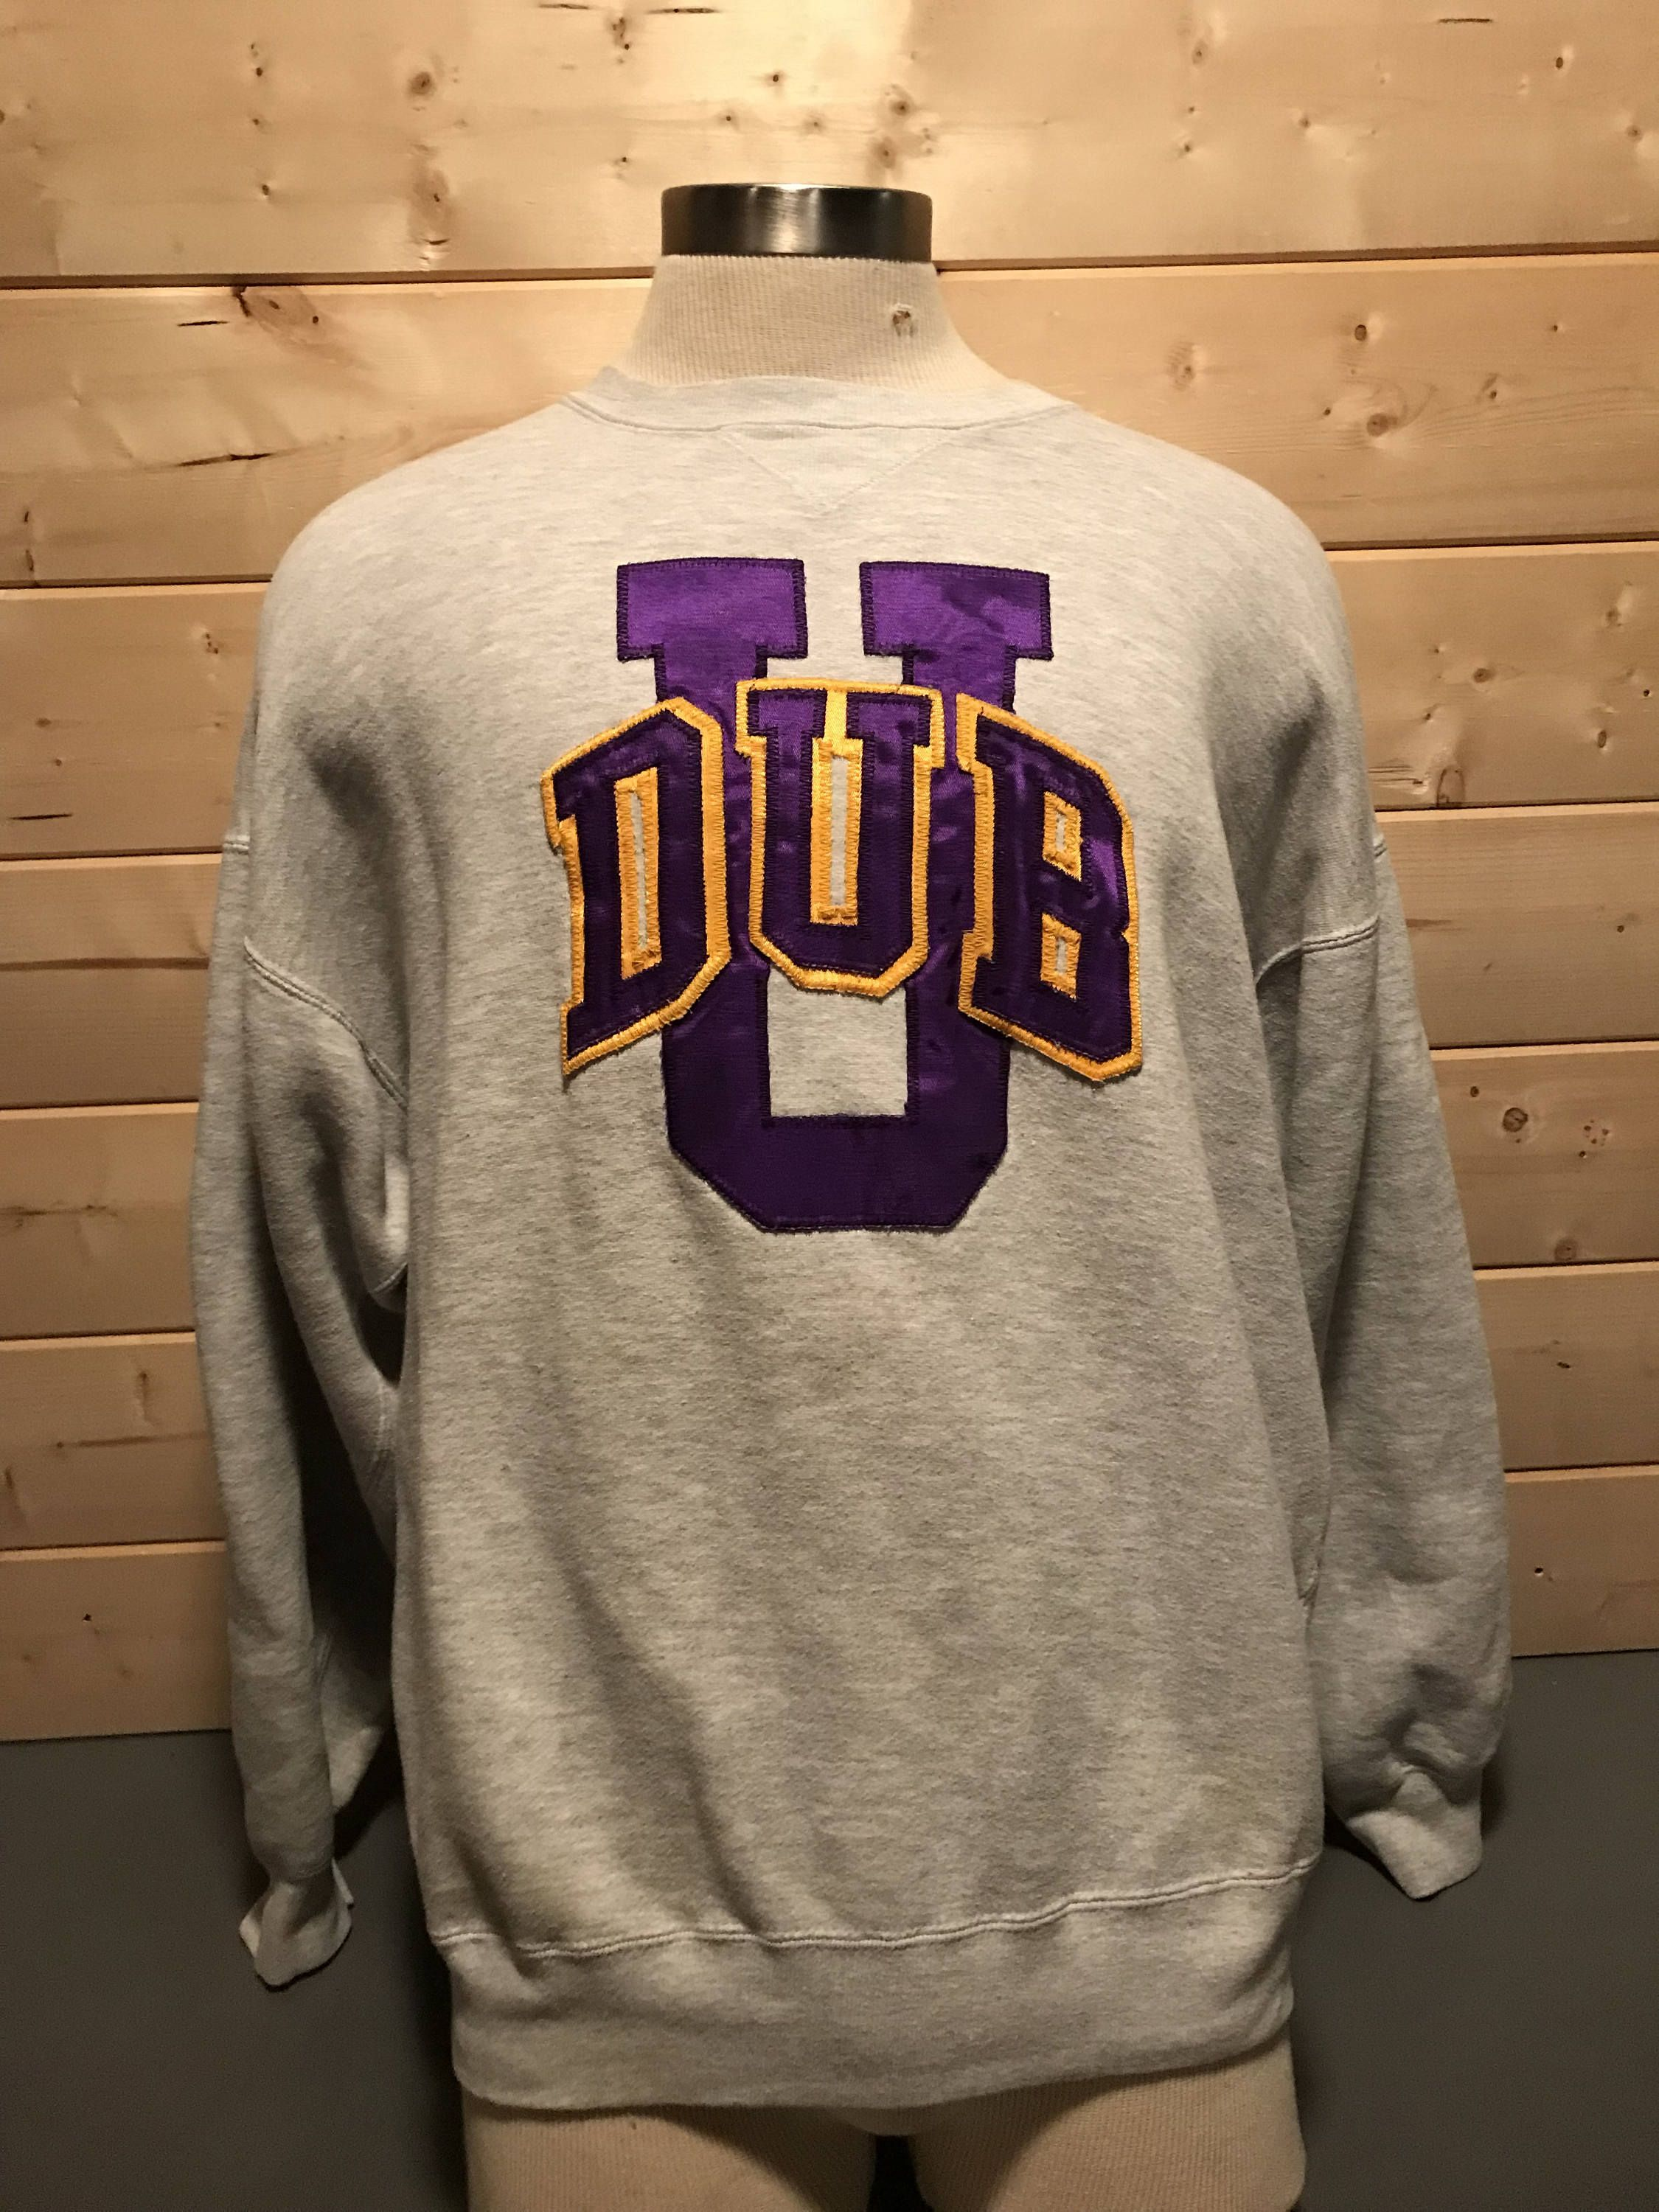 Vintage 1990 s UW Huskies washington Sweatshirt by 413productions on Etsy e5ff5e836